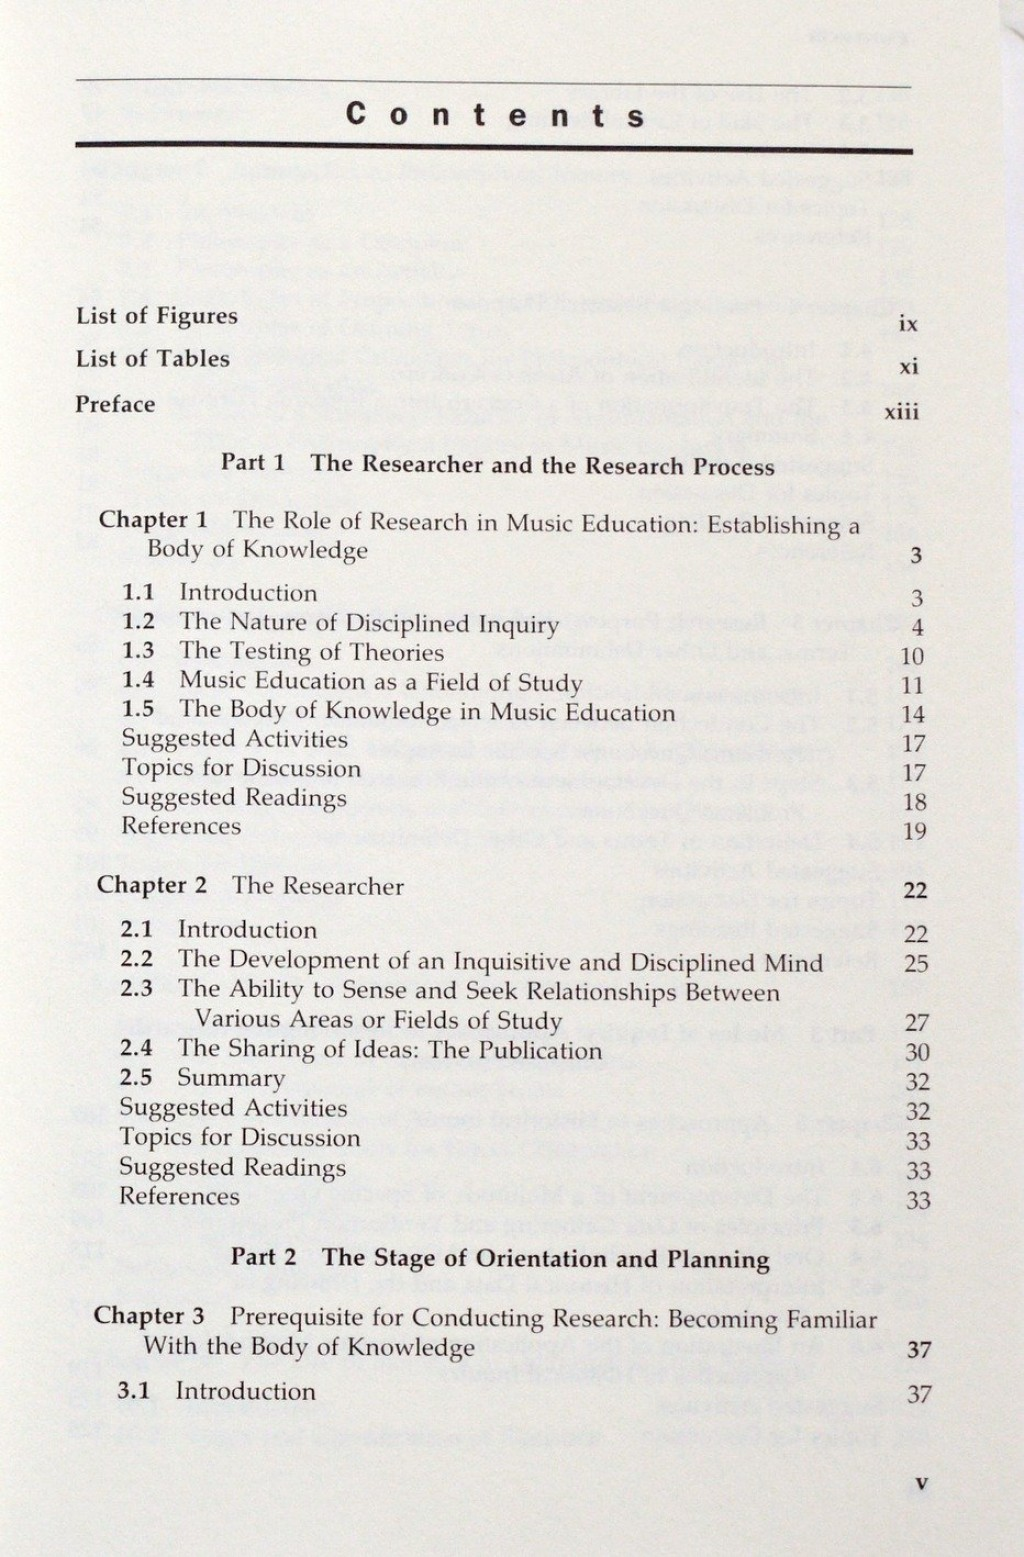 007 Research Paper 71m W90ewl Parts Of Chapter Beautiful 1 3 1-3 2 Large